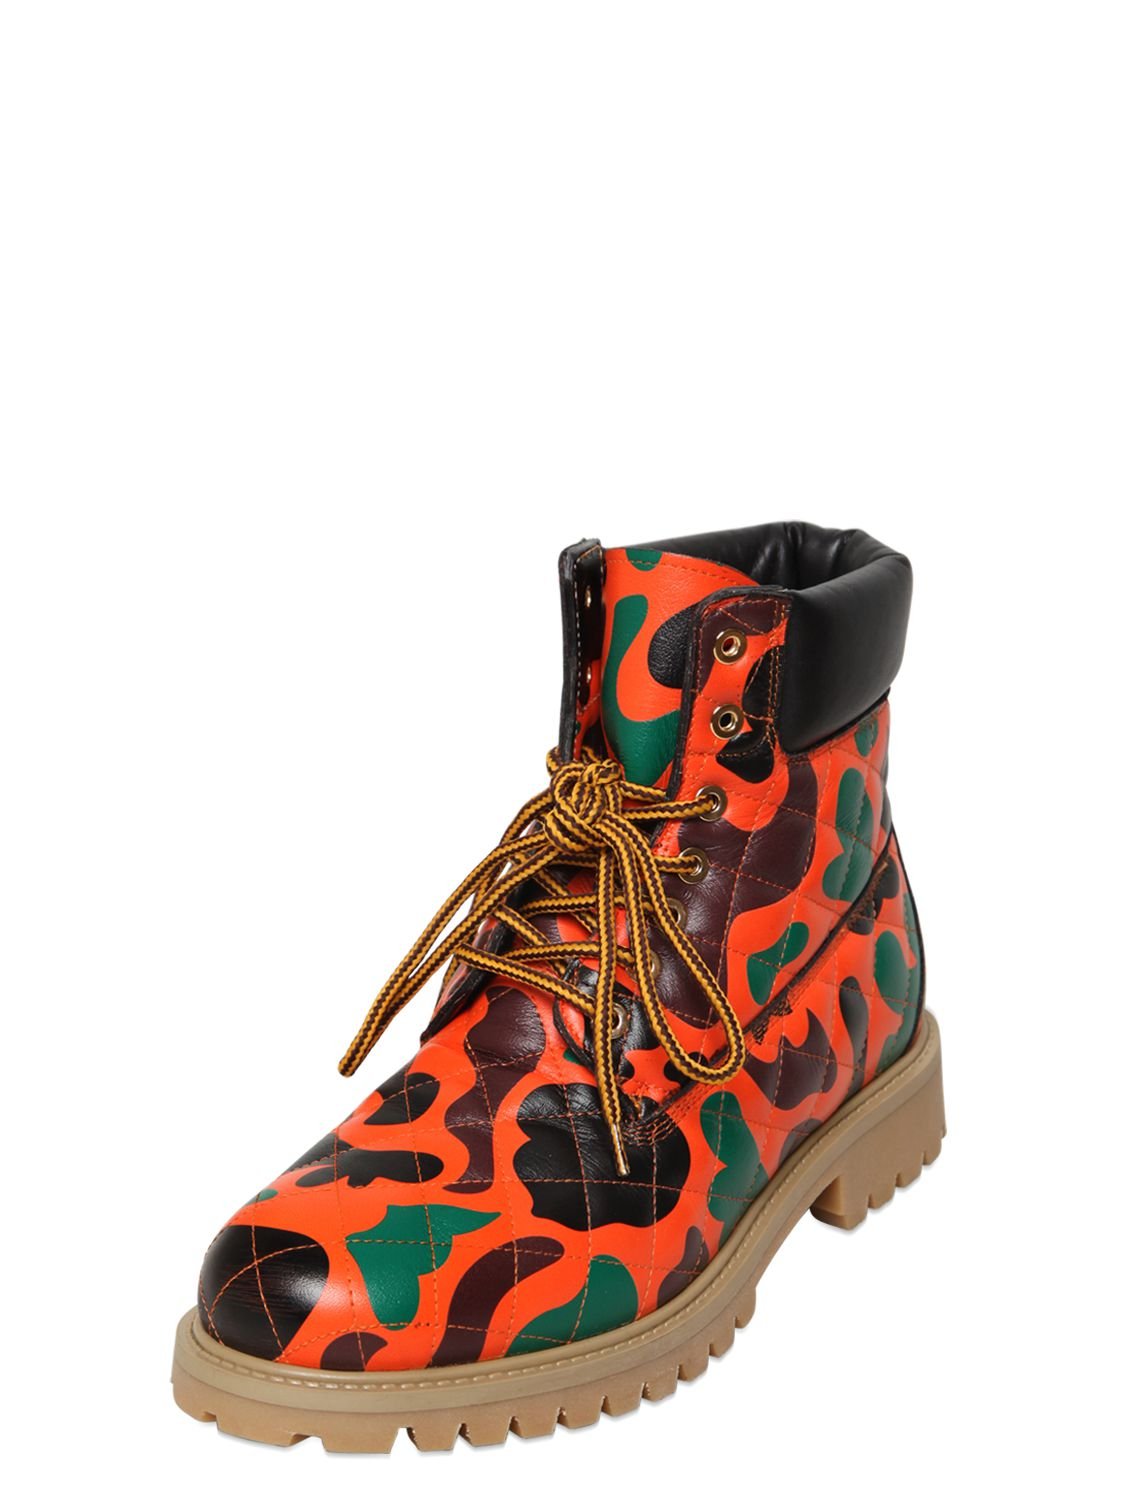 Lyst Moschino Camo Print Quilted Leather Boots In Orange